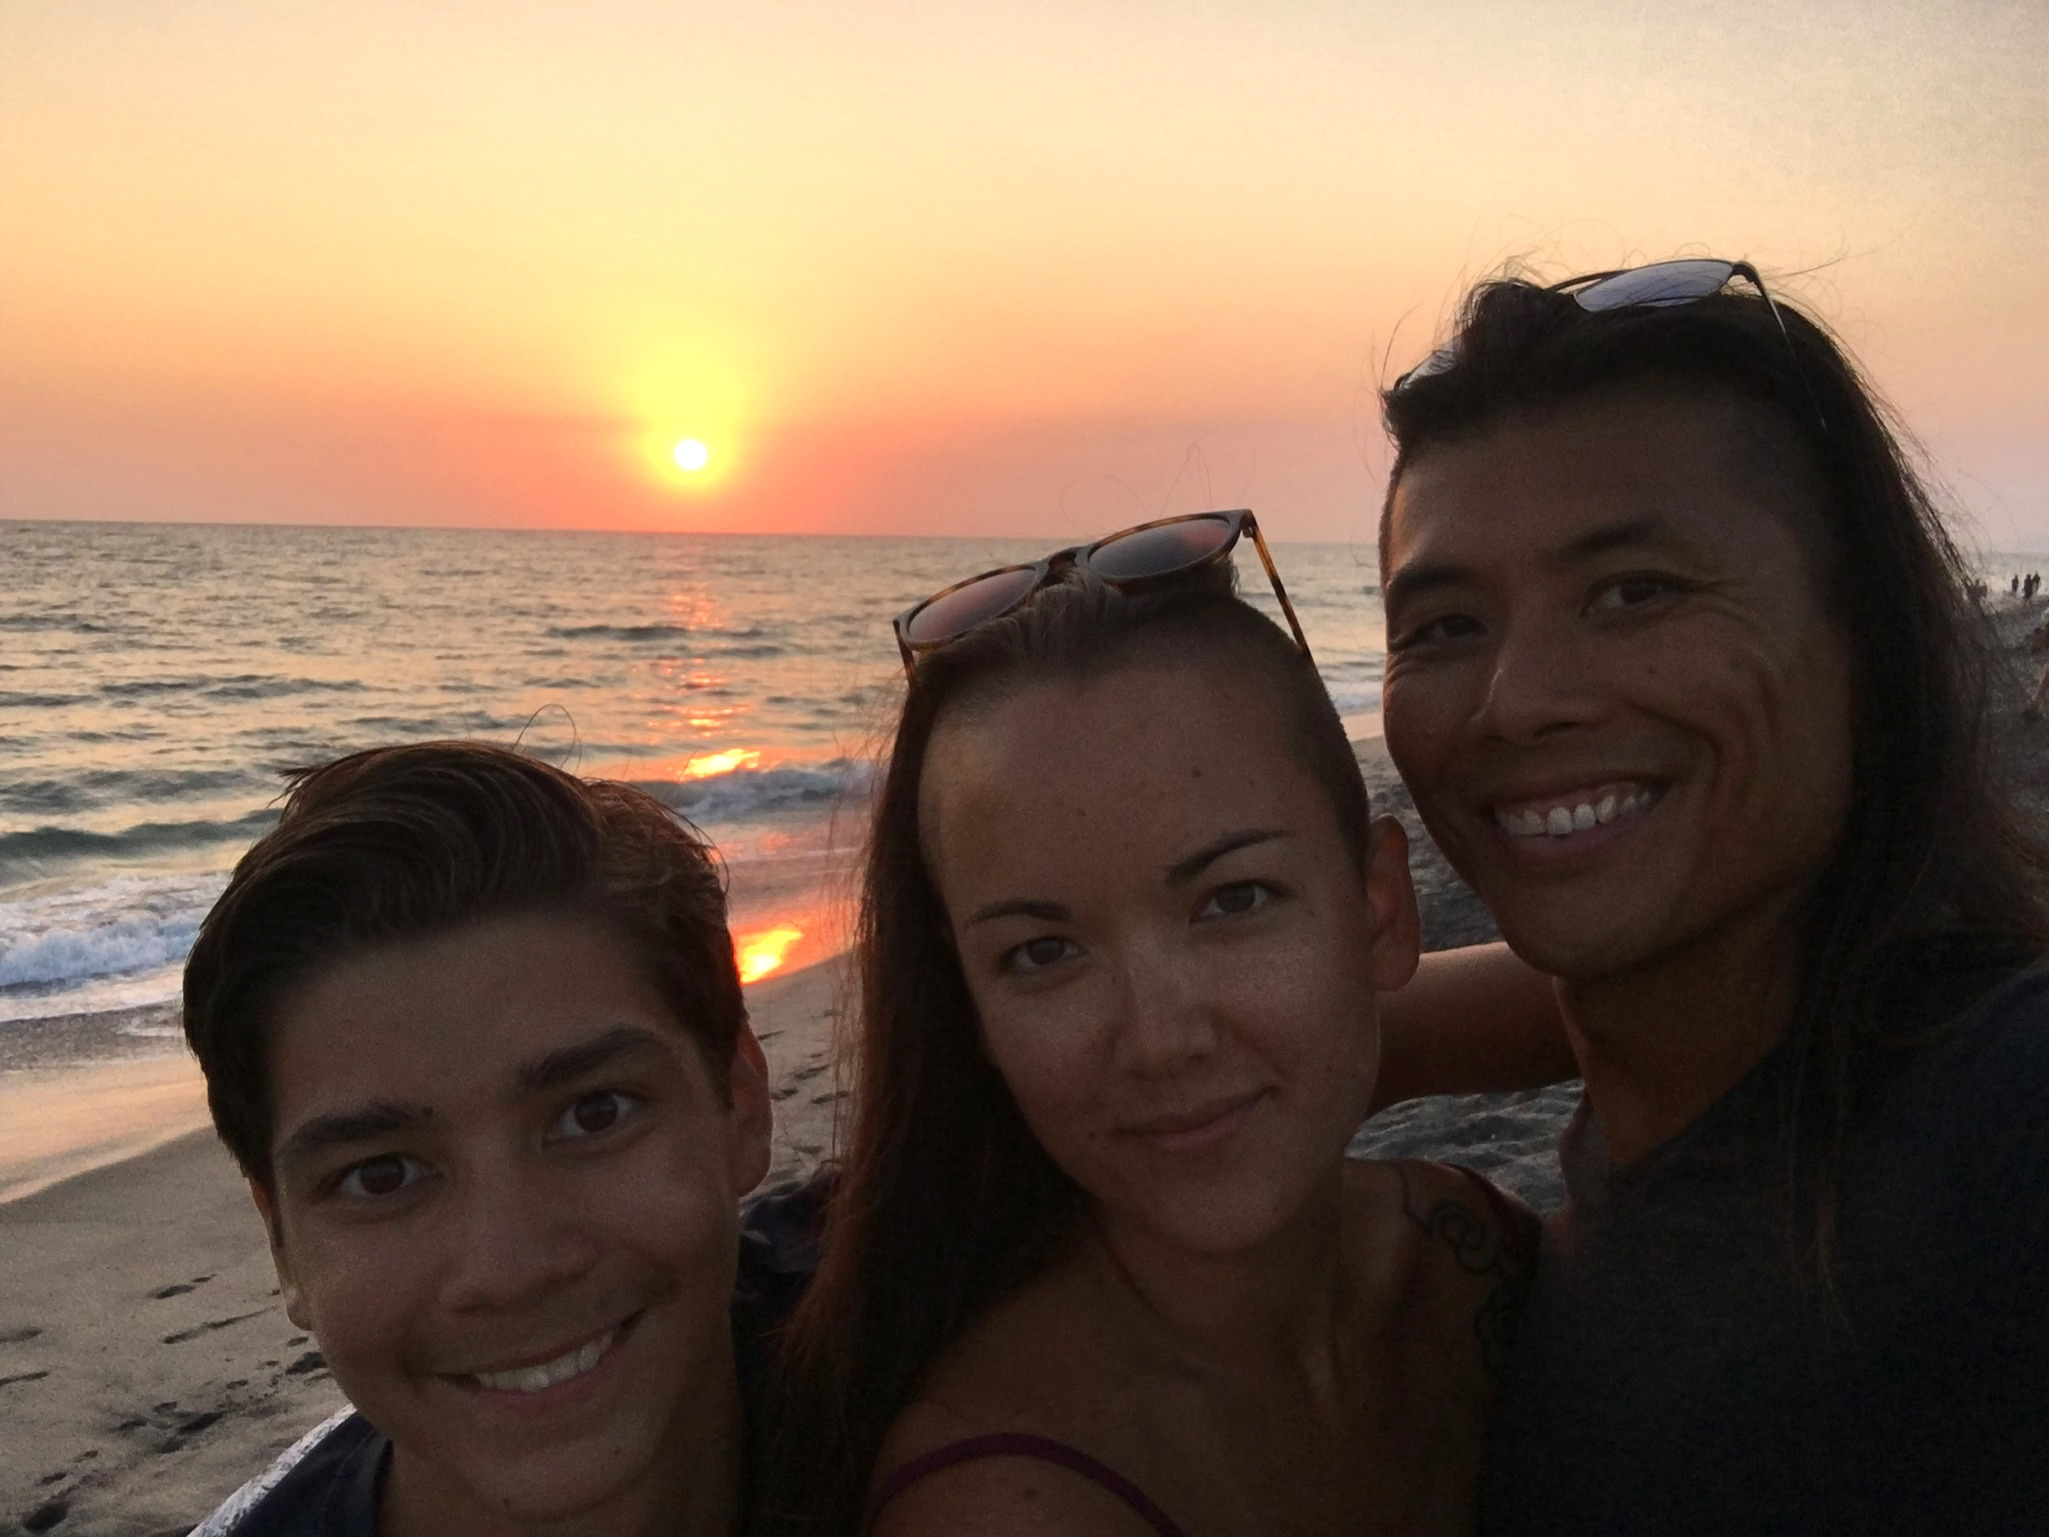 Whitney with her husband, Andrew (Australian-born Chinese), and her step-son, Lucjan, who also happens to be mixed (white and Chinese) near Encinitas, California (2018).